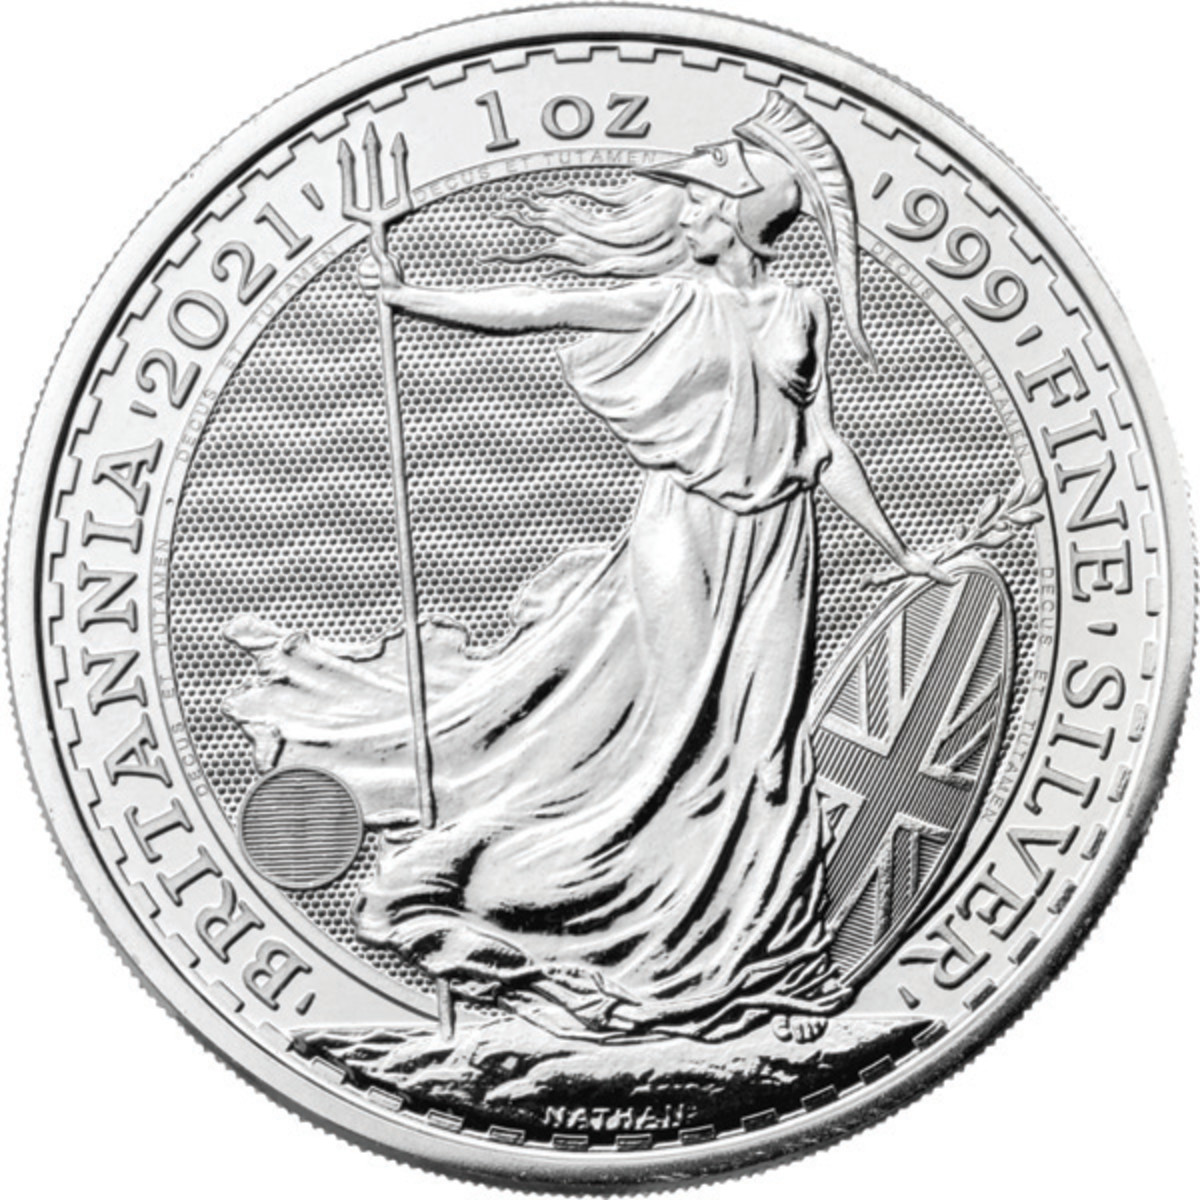 The British Royal Mint recently expanded into the sale of rare and historic coins in addition to those being currently manufactured.